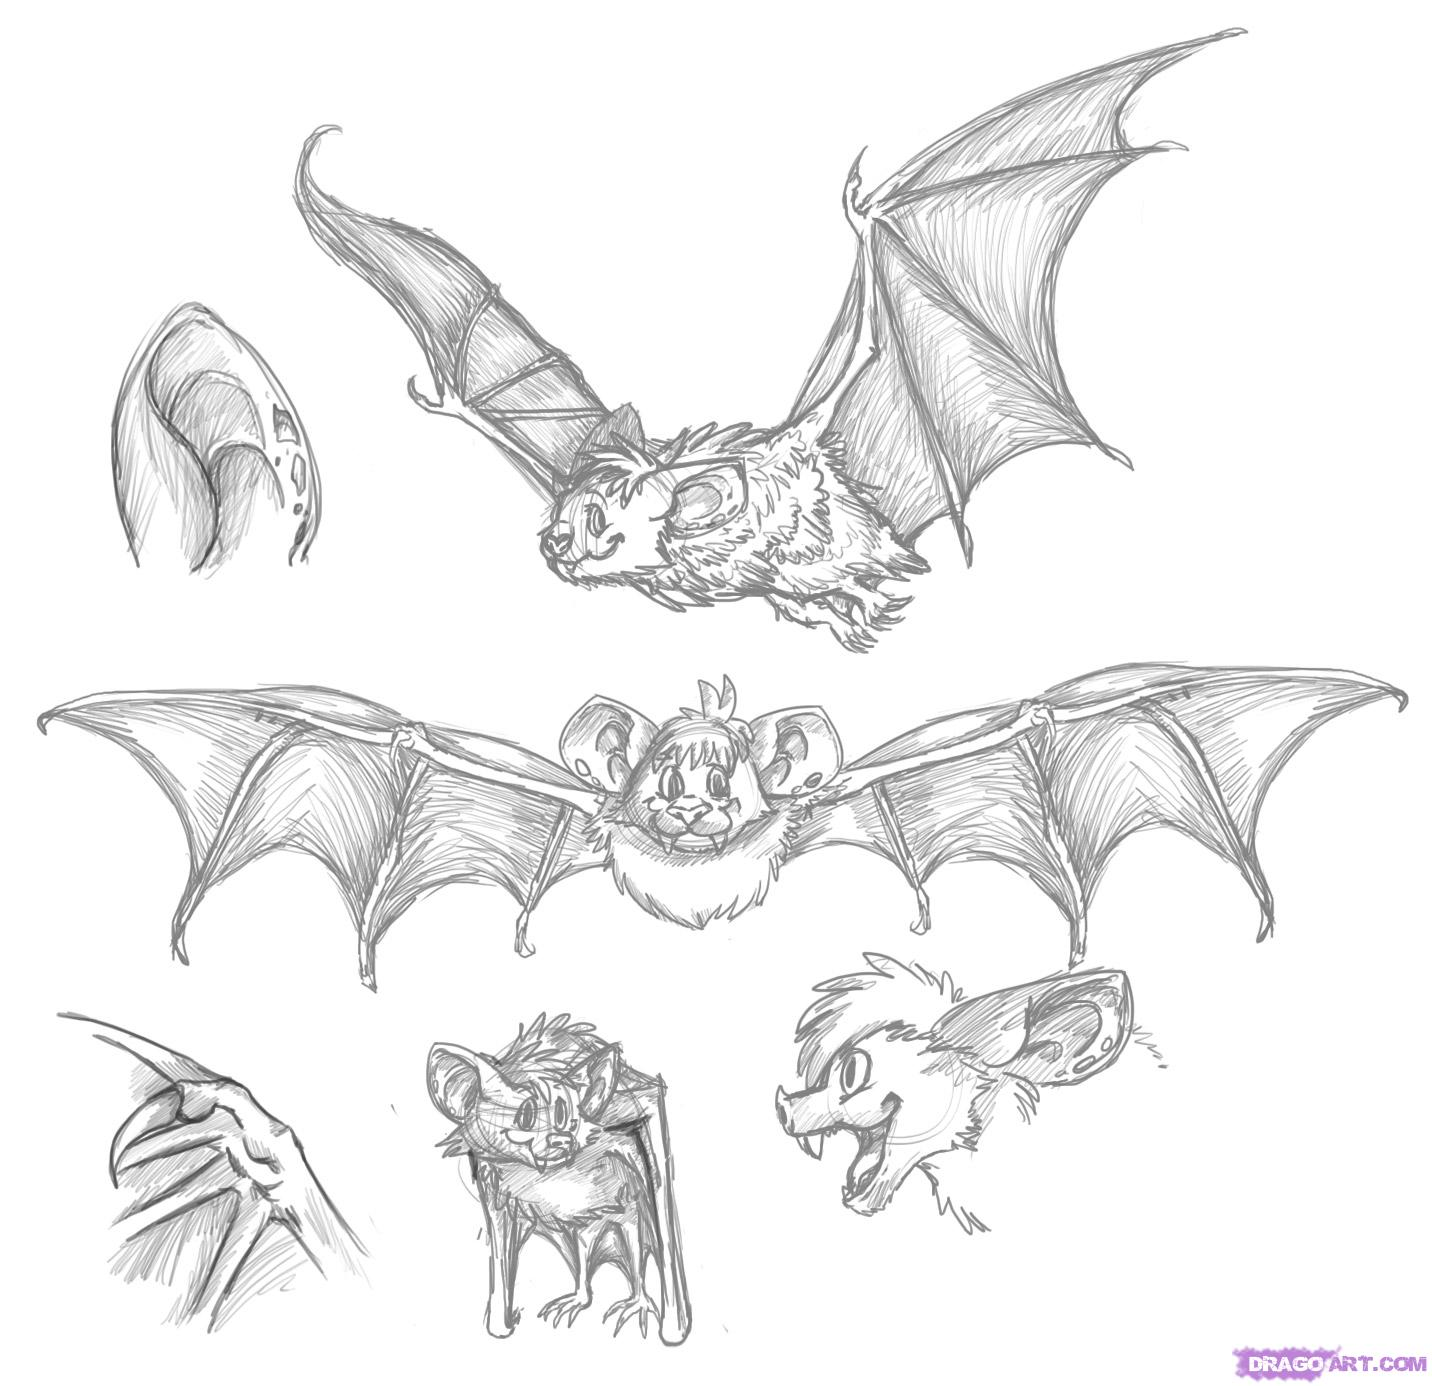 Drawn bat Bat Bat Dawn a Sheets